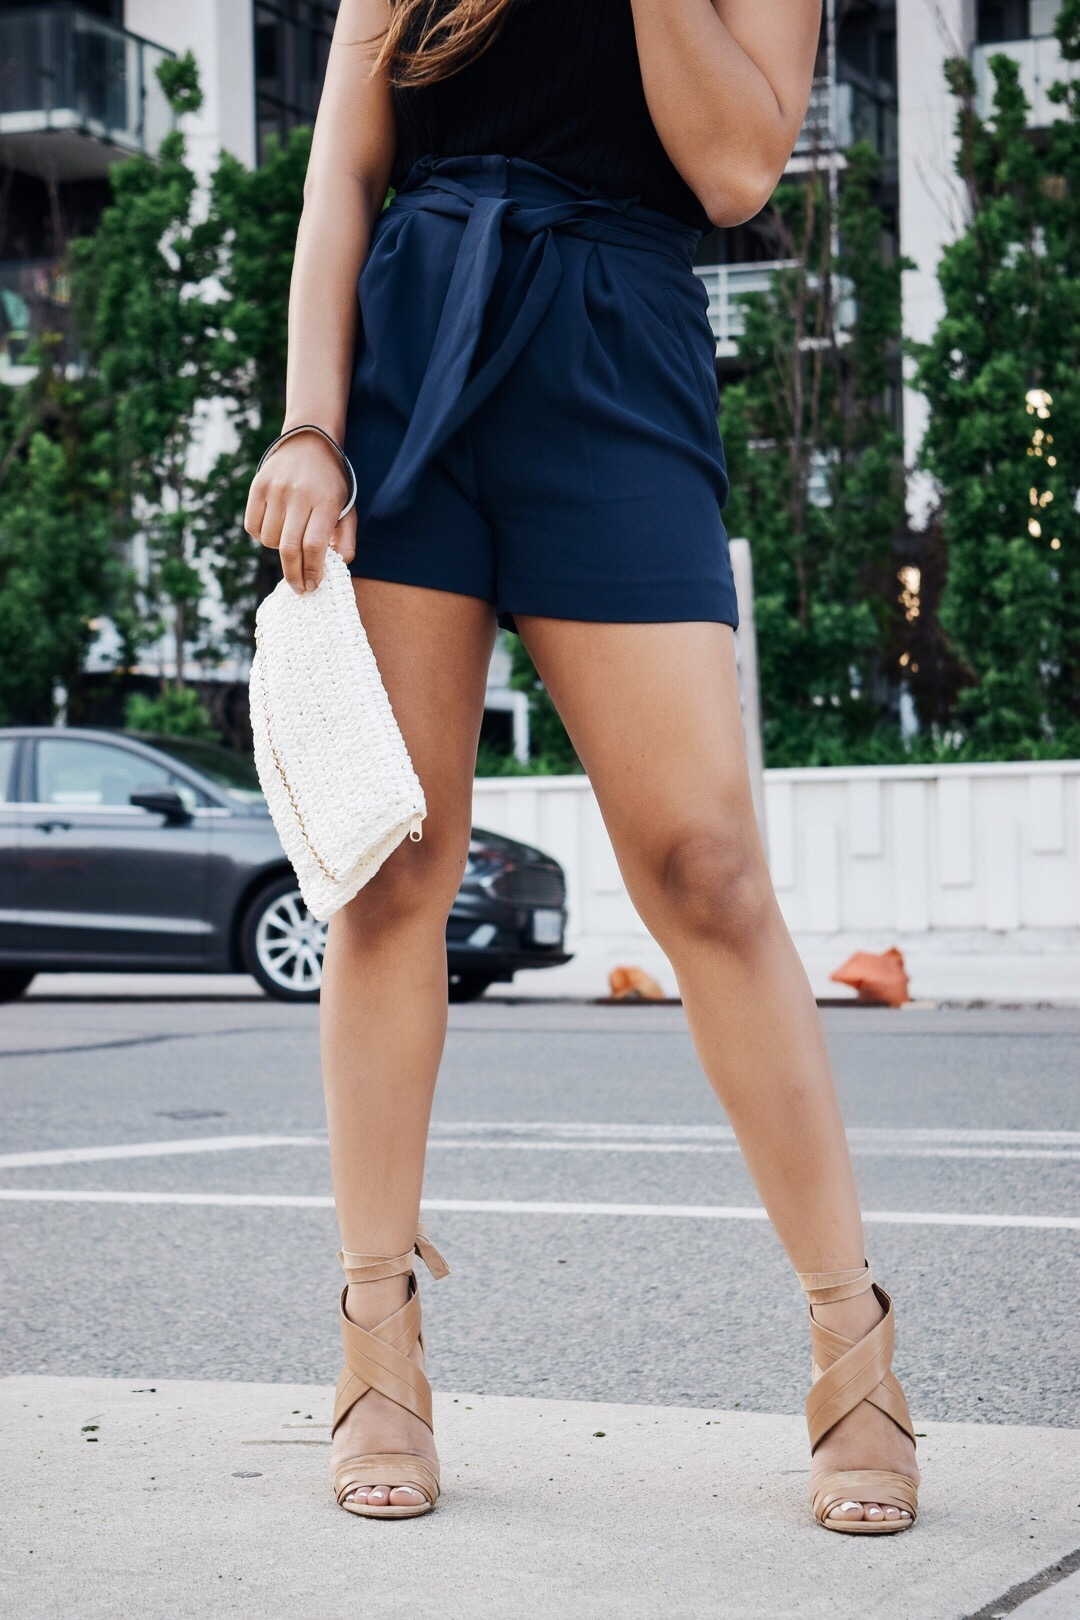 Fashion Blogger Lauren Sheriff From Basic Babe Wearing Shorts From H&M